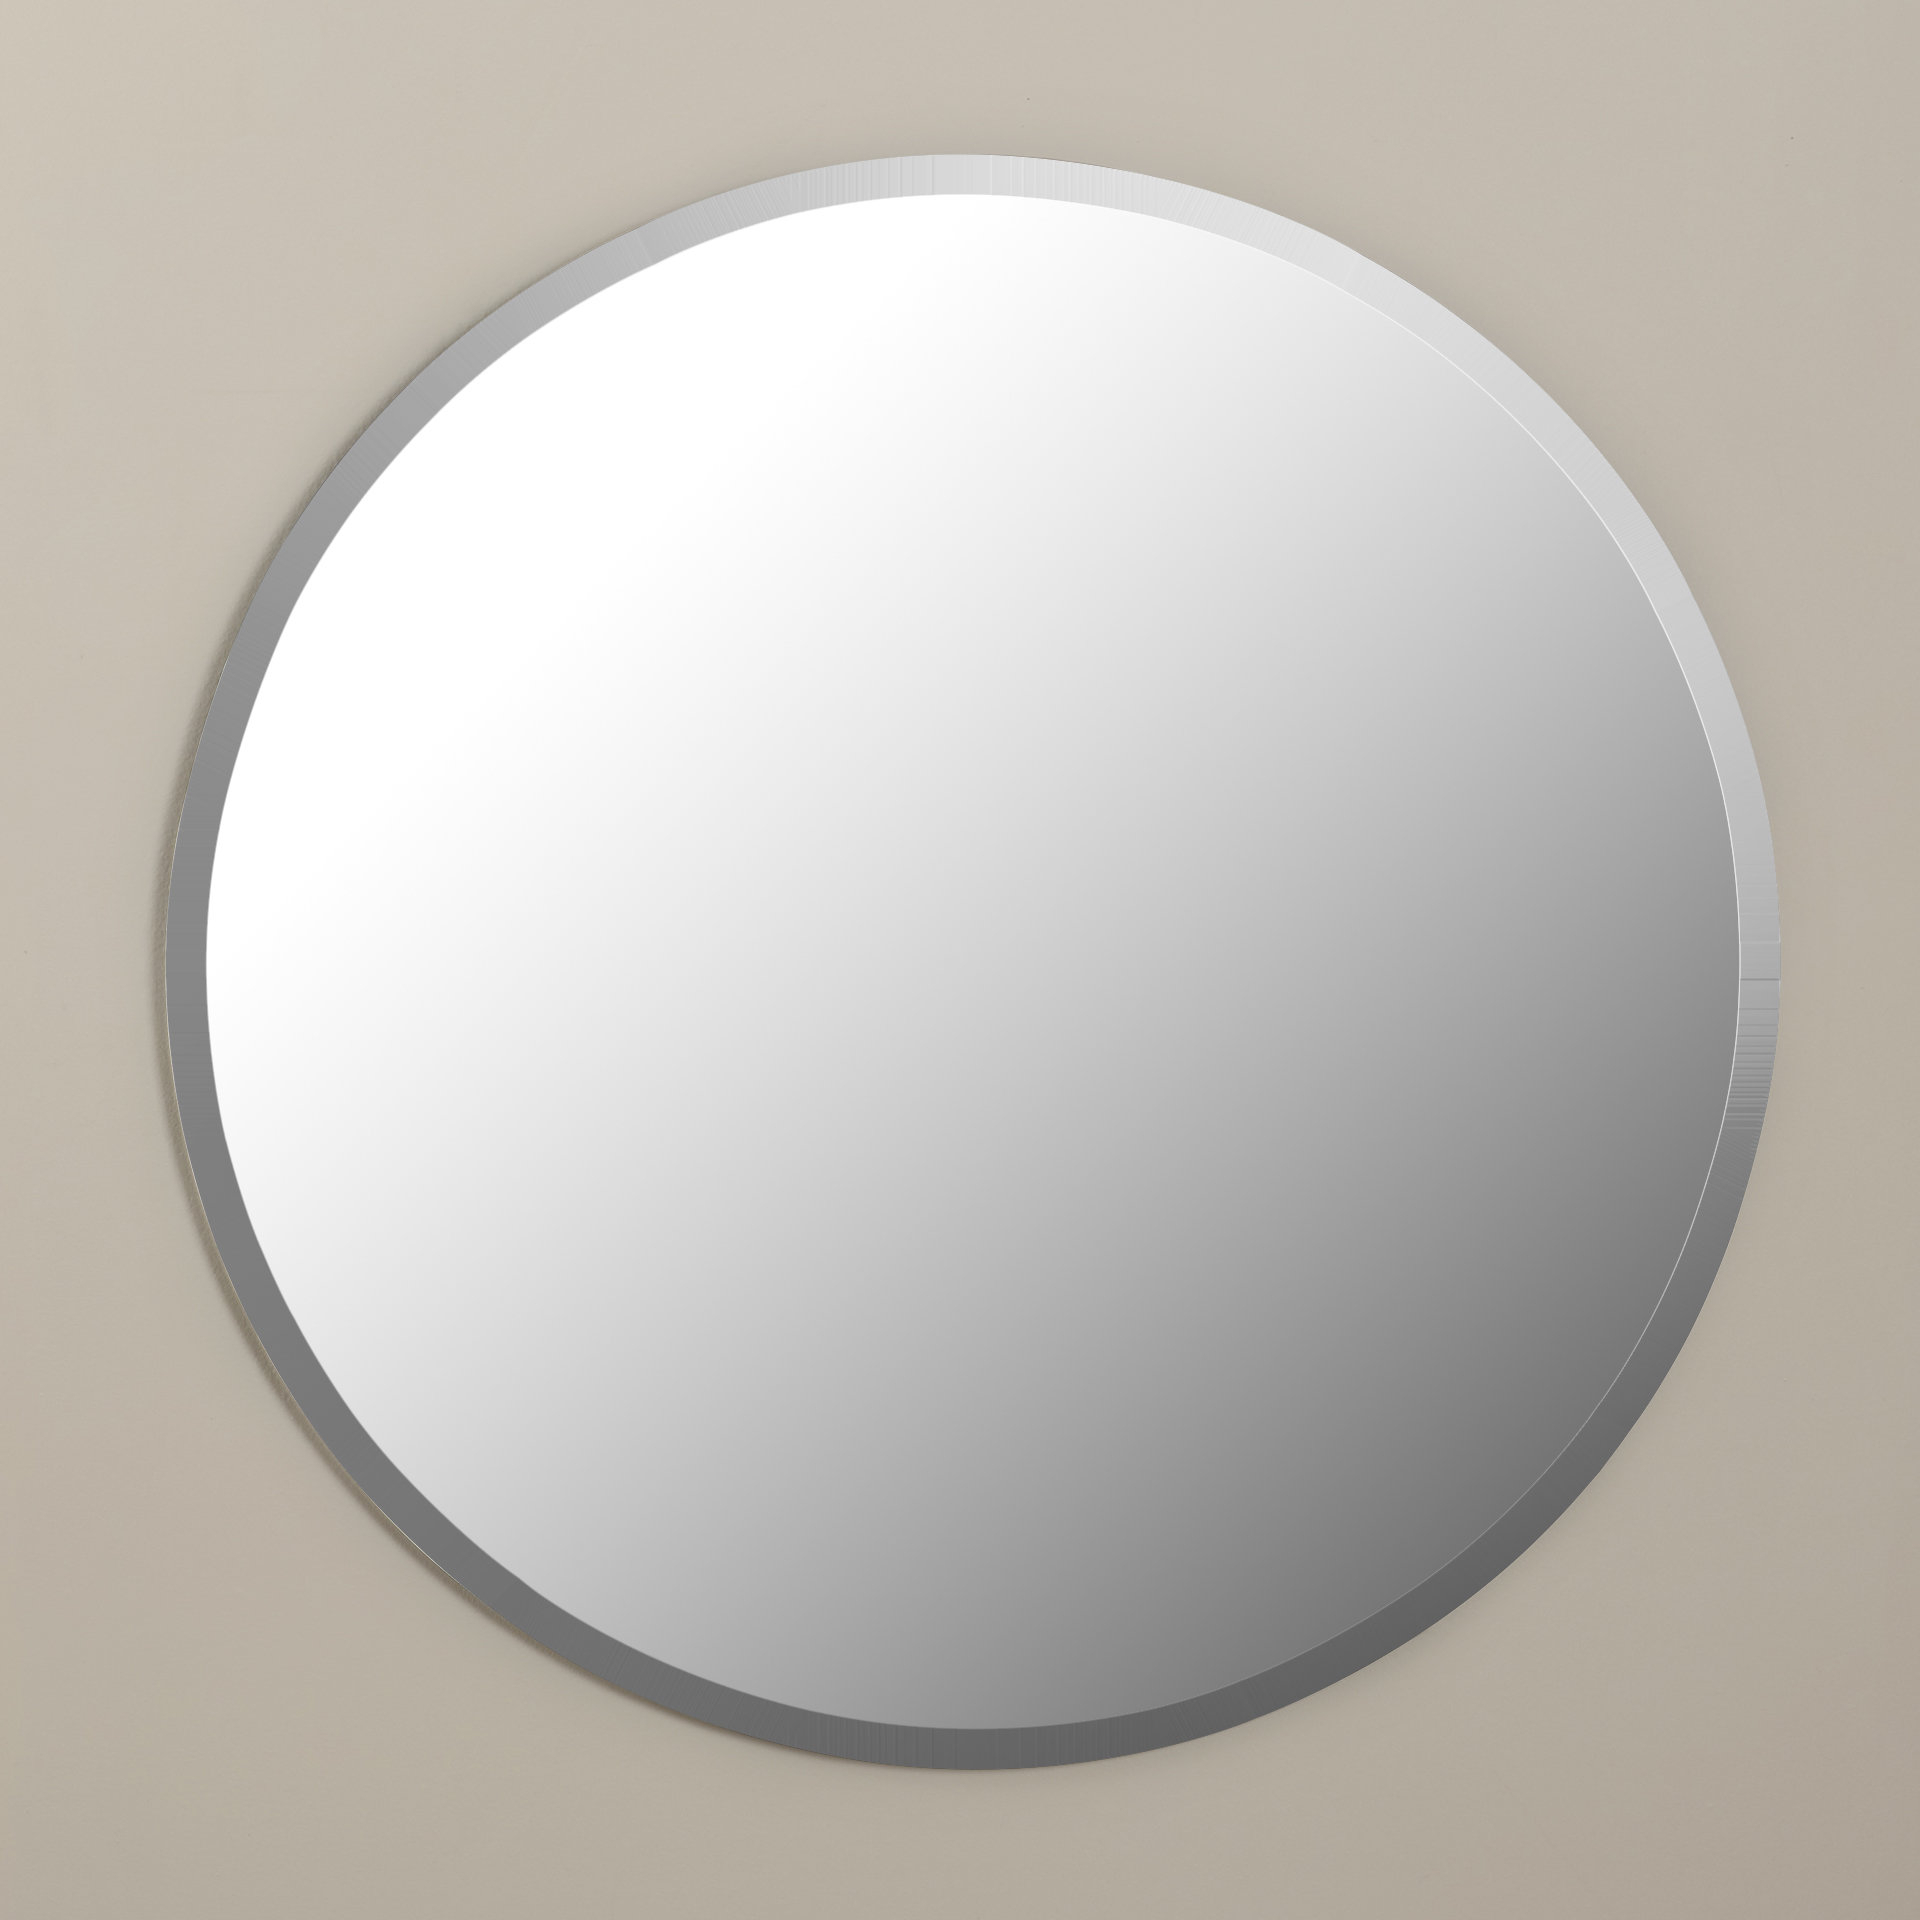 Kayden Accent Mirrors For Well Known Kayden Accent Mirror (Gallery 2 of 20)